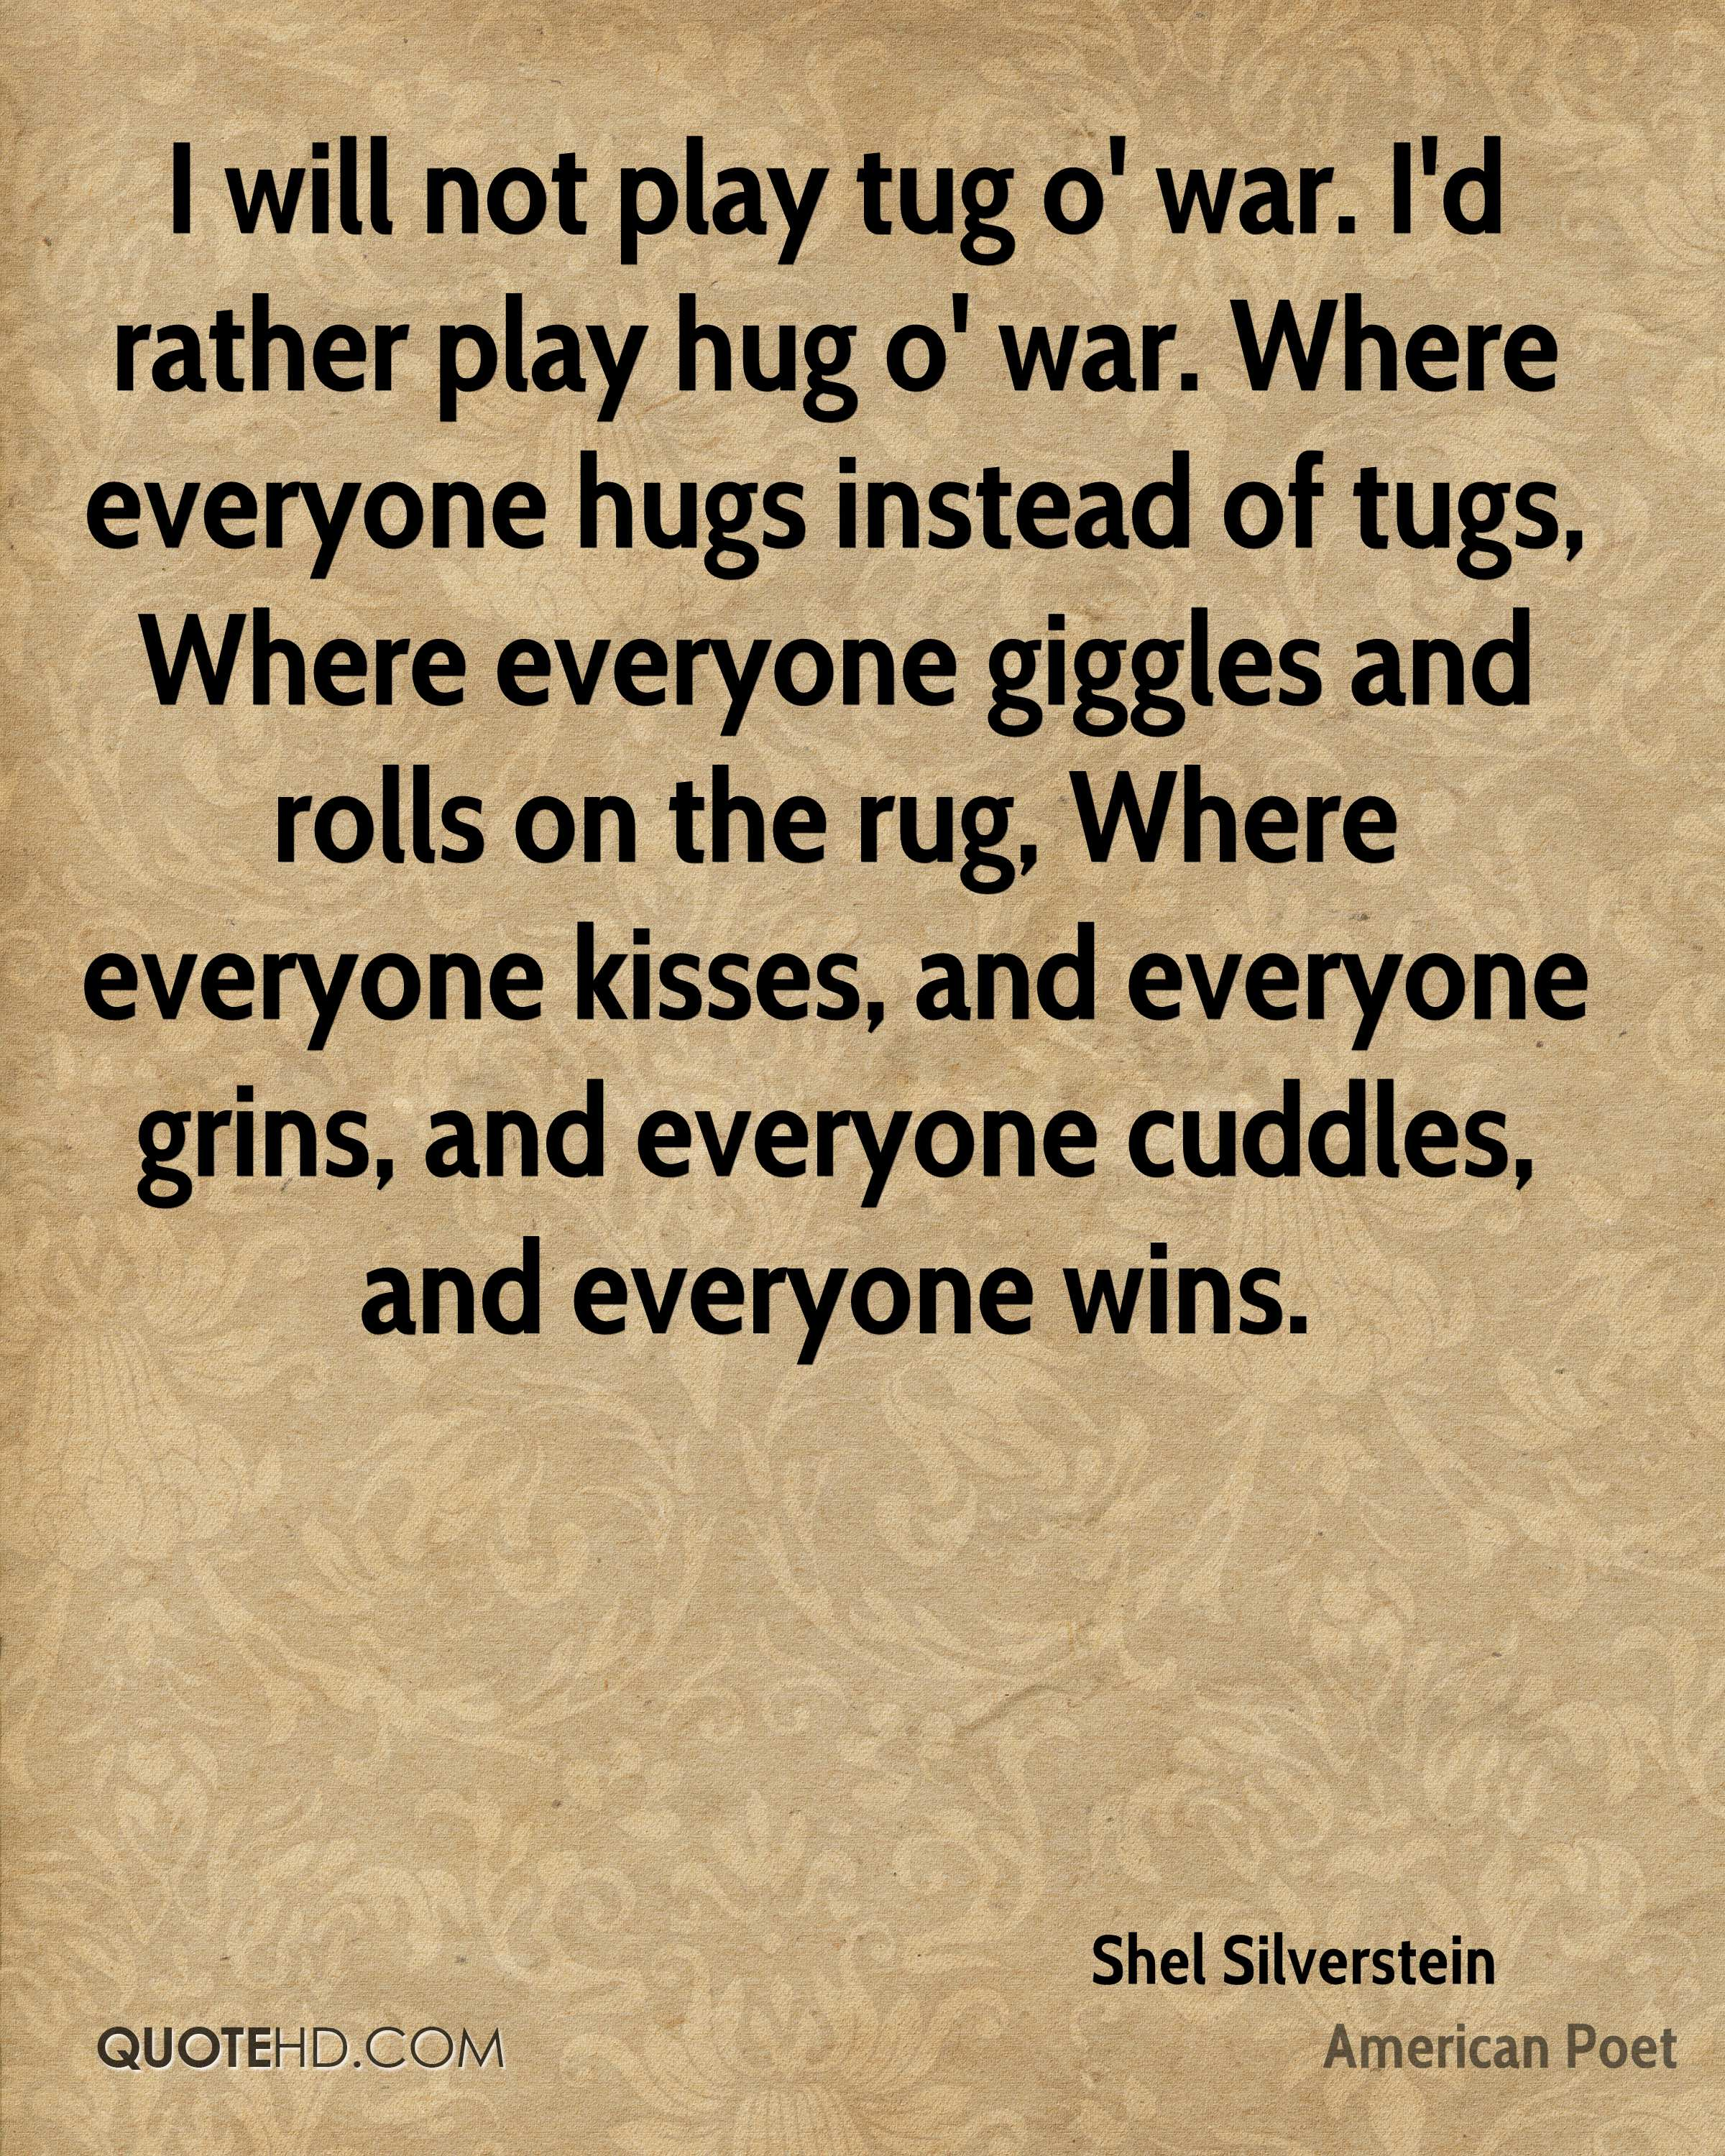 I will not play tug o' war. I'd rather play hug o' war. Where everyone hugs instead of tugs, Where everyone giggles and rolls on the rug, Where everyone kisses, and everyone grins, and everyone cuddles, and everyone wins.